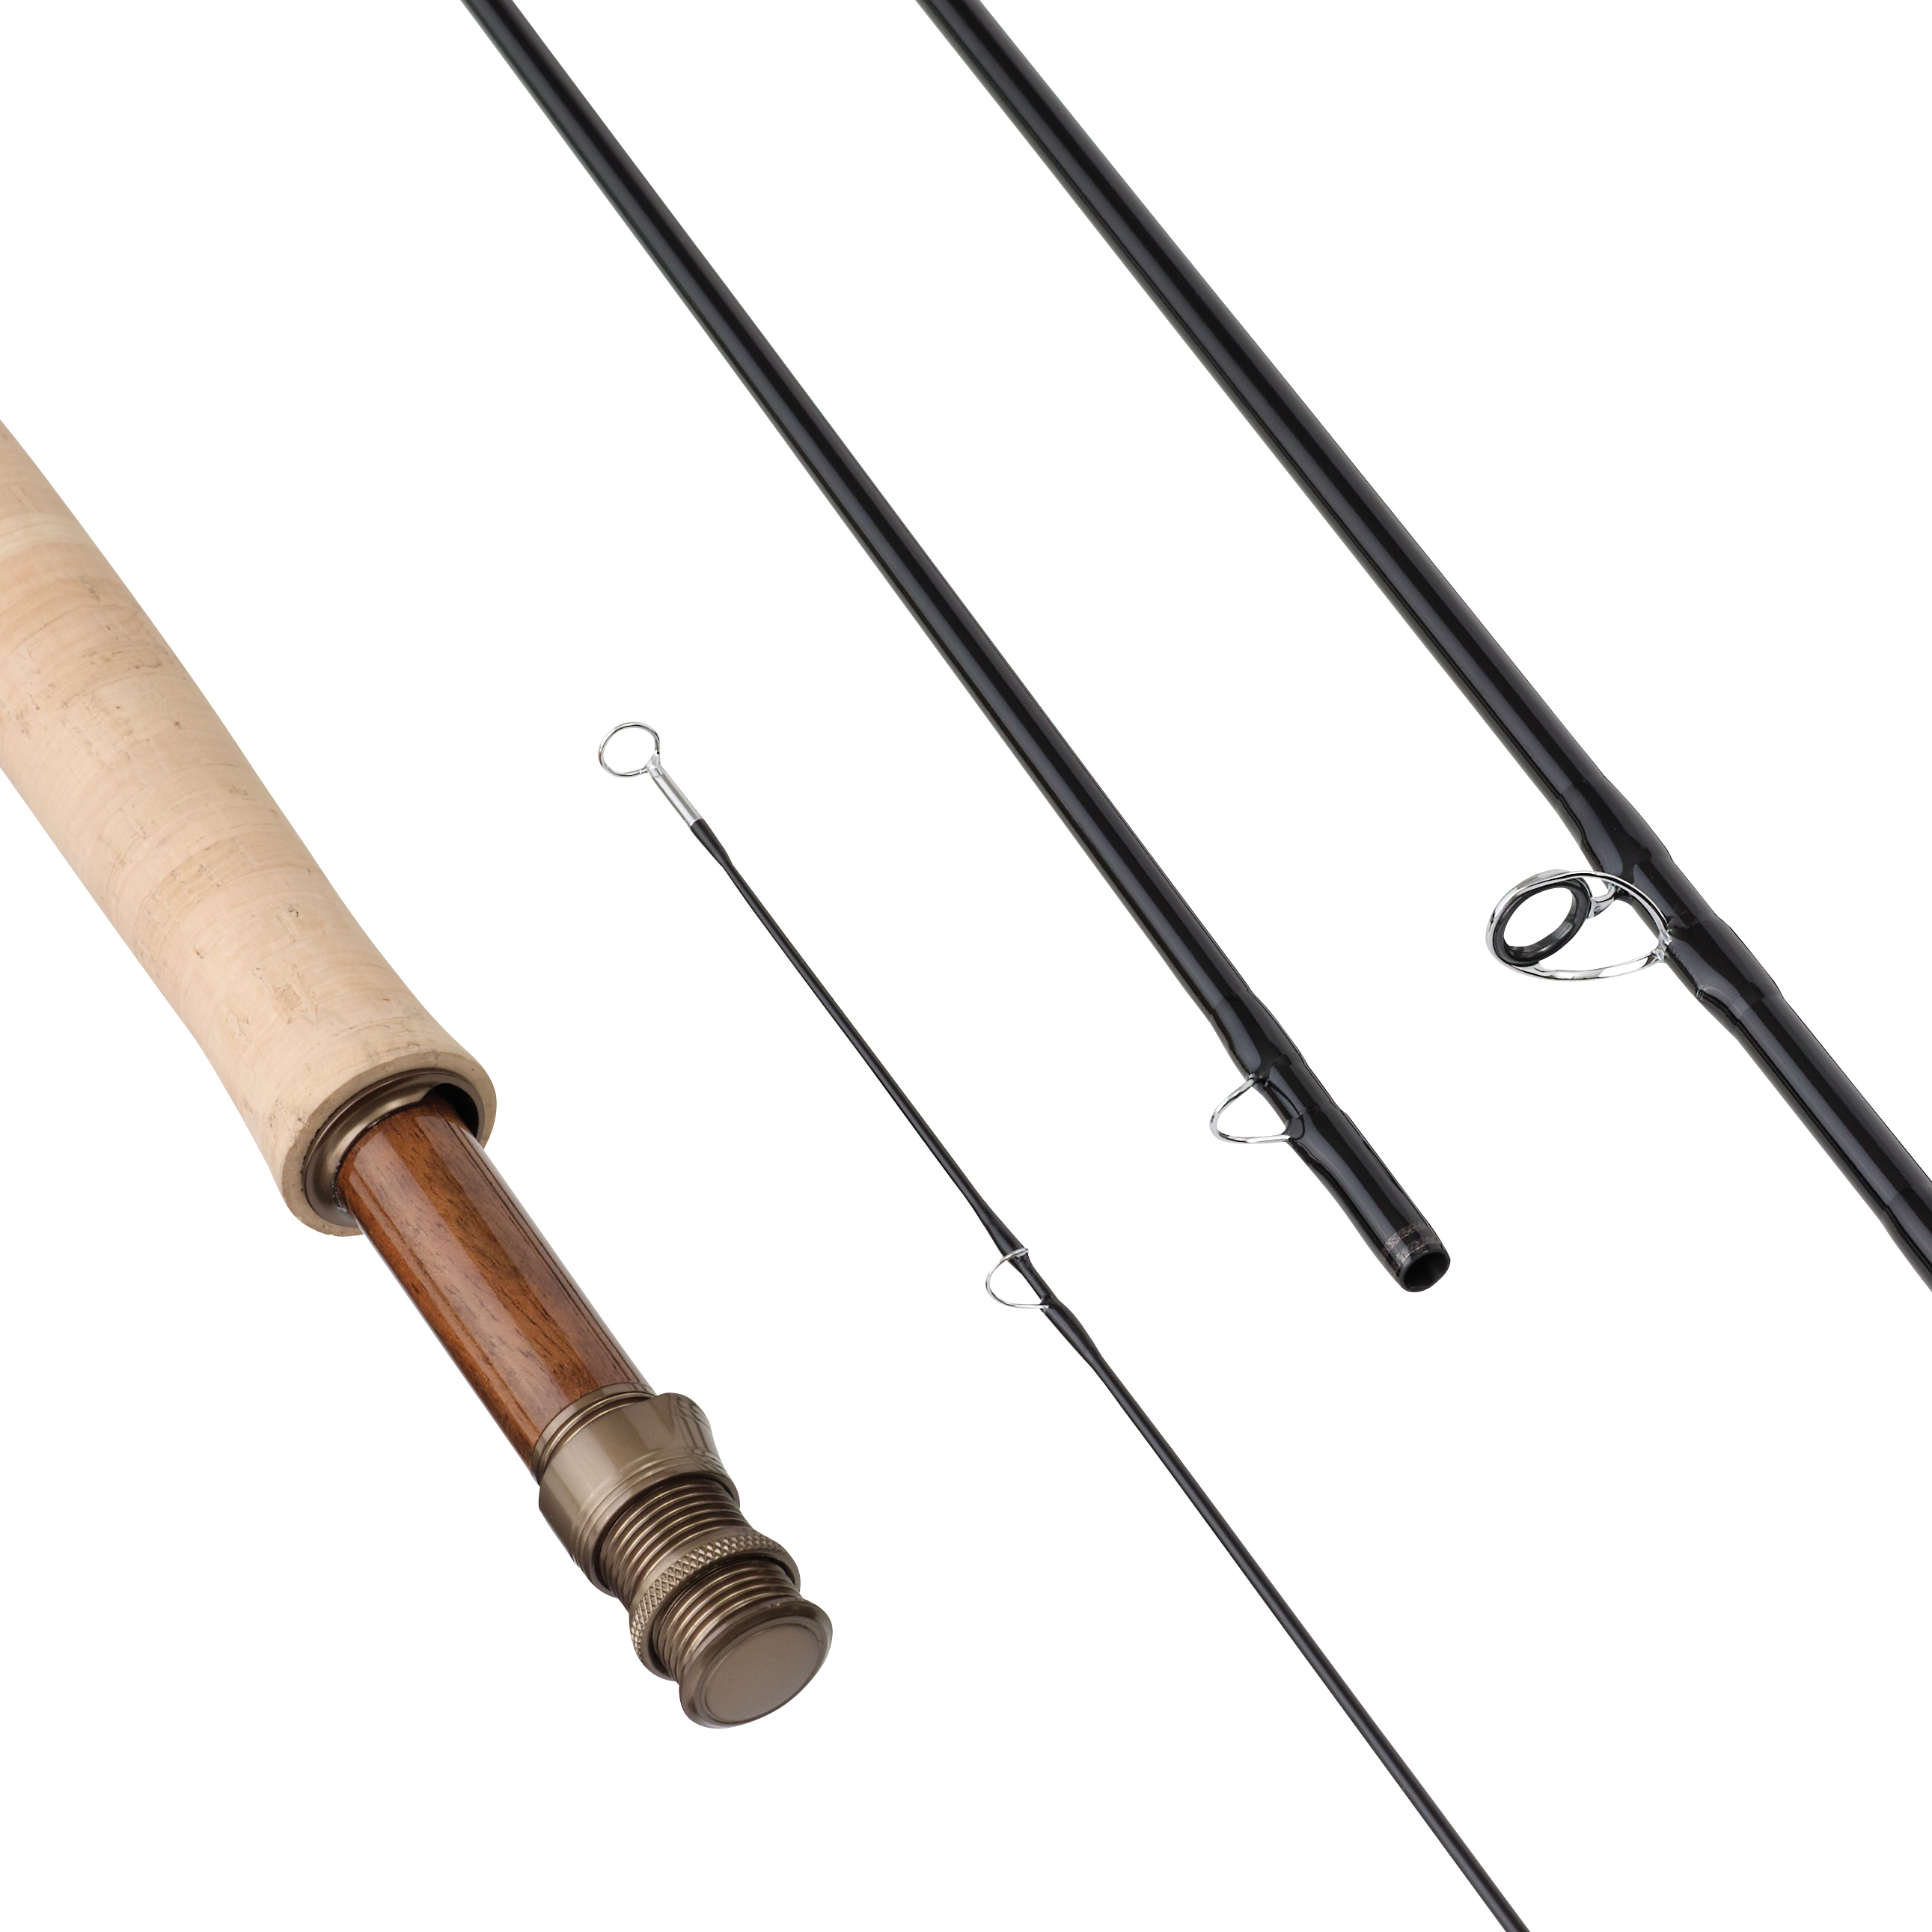 Sage one fly rods glasgow angling centre for Fly fishing rods